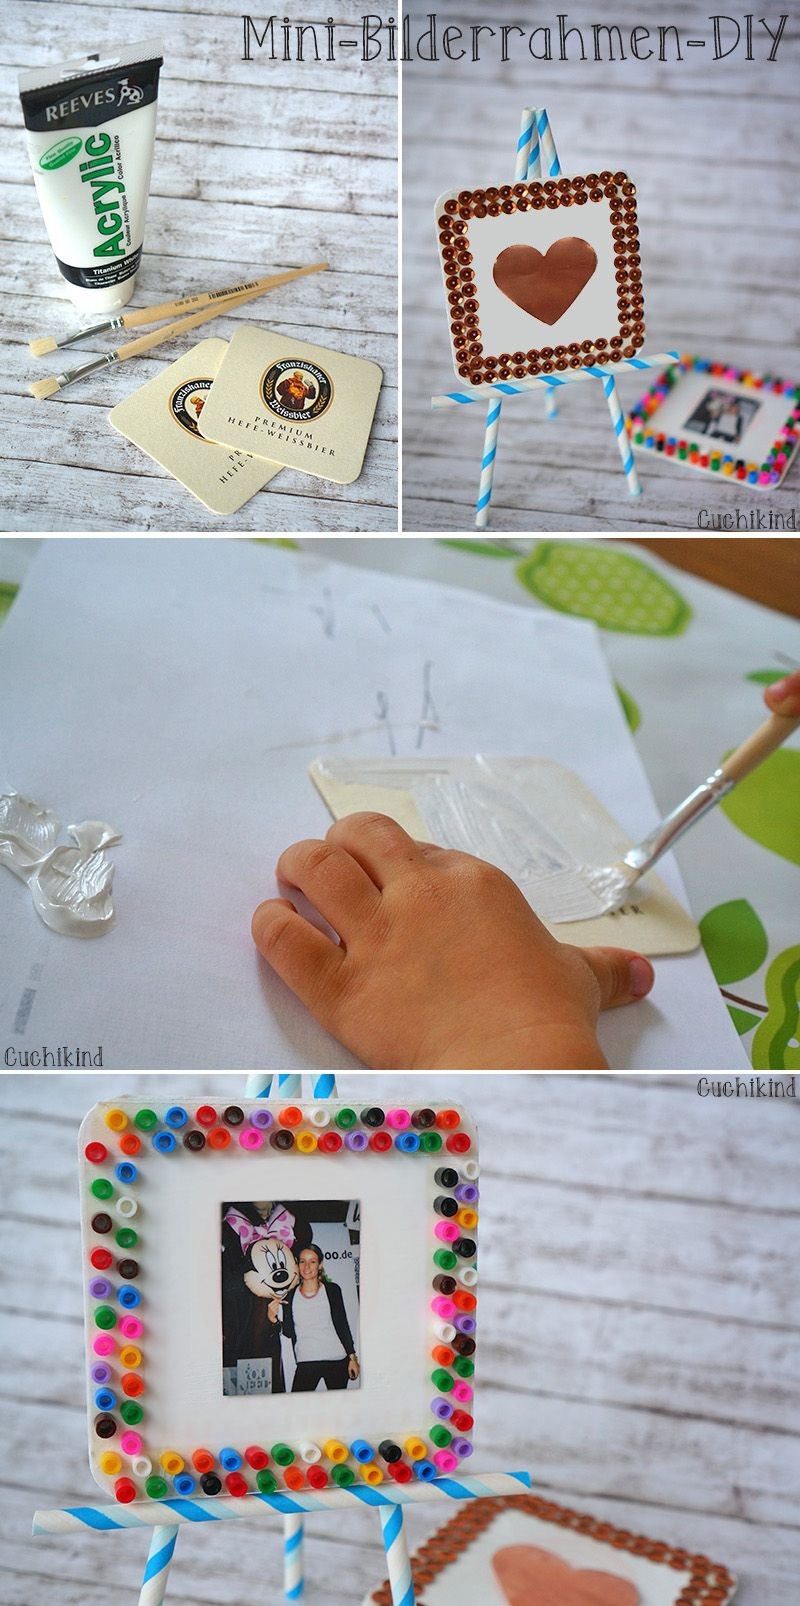 Mini-Bilderrahmen-DIY | BLOG Cuchikind | Pinterest | Mini ...